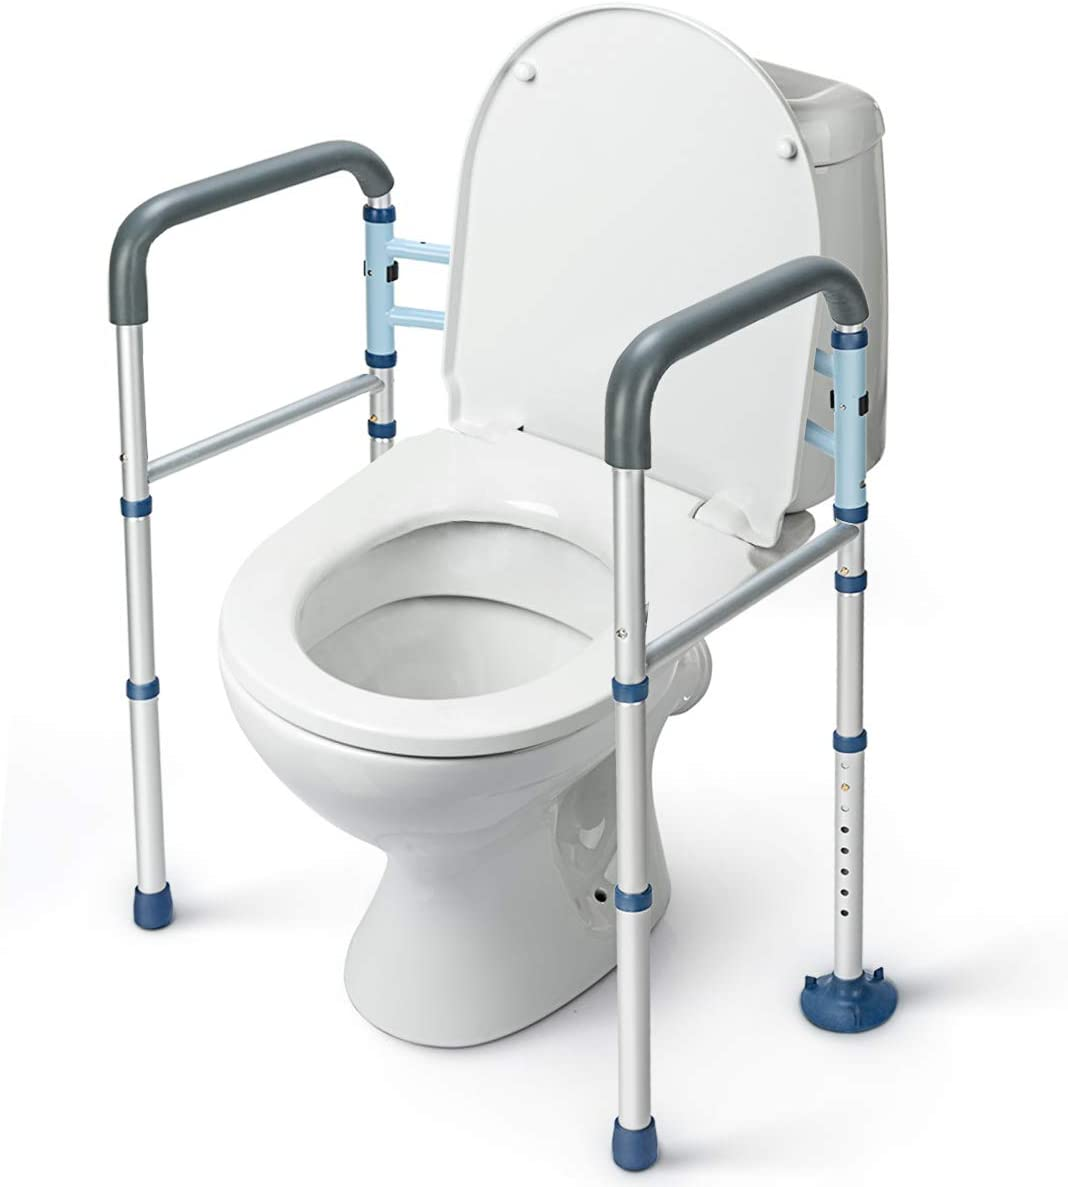 Amazon Com Greenchief Stand Alone Toilet Safety Rail With Free Grab Bar Heavy Duty Toilet Safety Frame For Elderly Handicap And Disabled Adjustable Freestanding Toilet Handrails Helper Fit Any Toilet